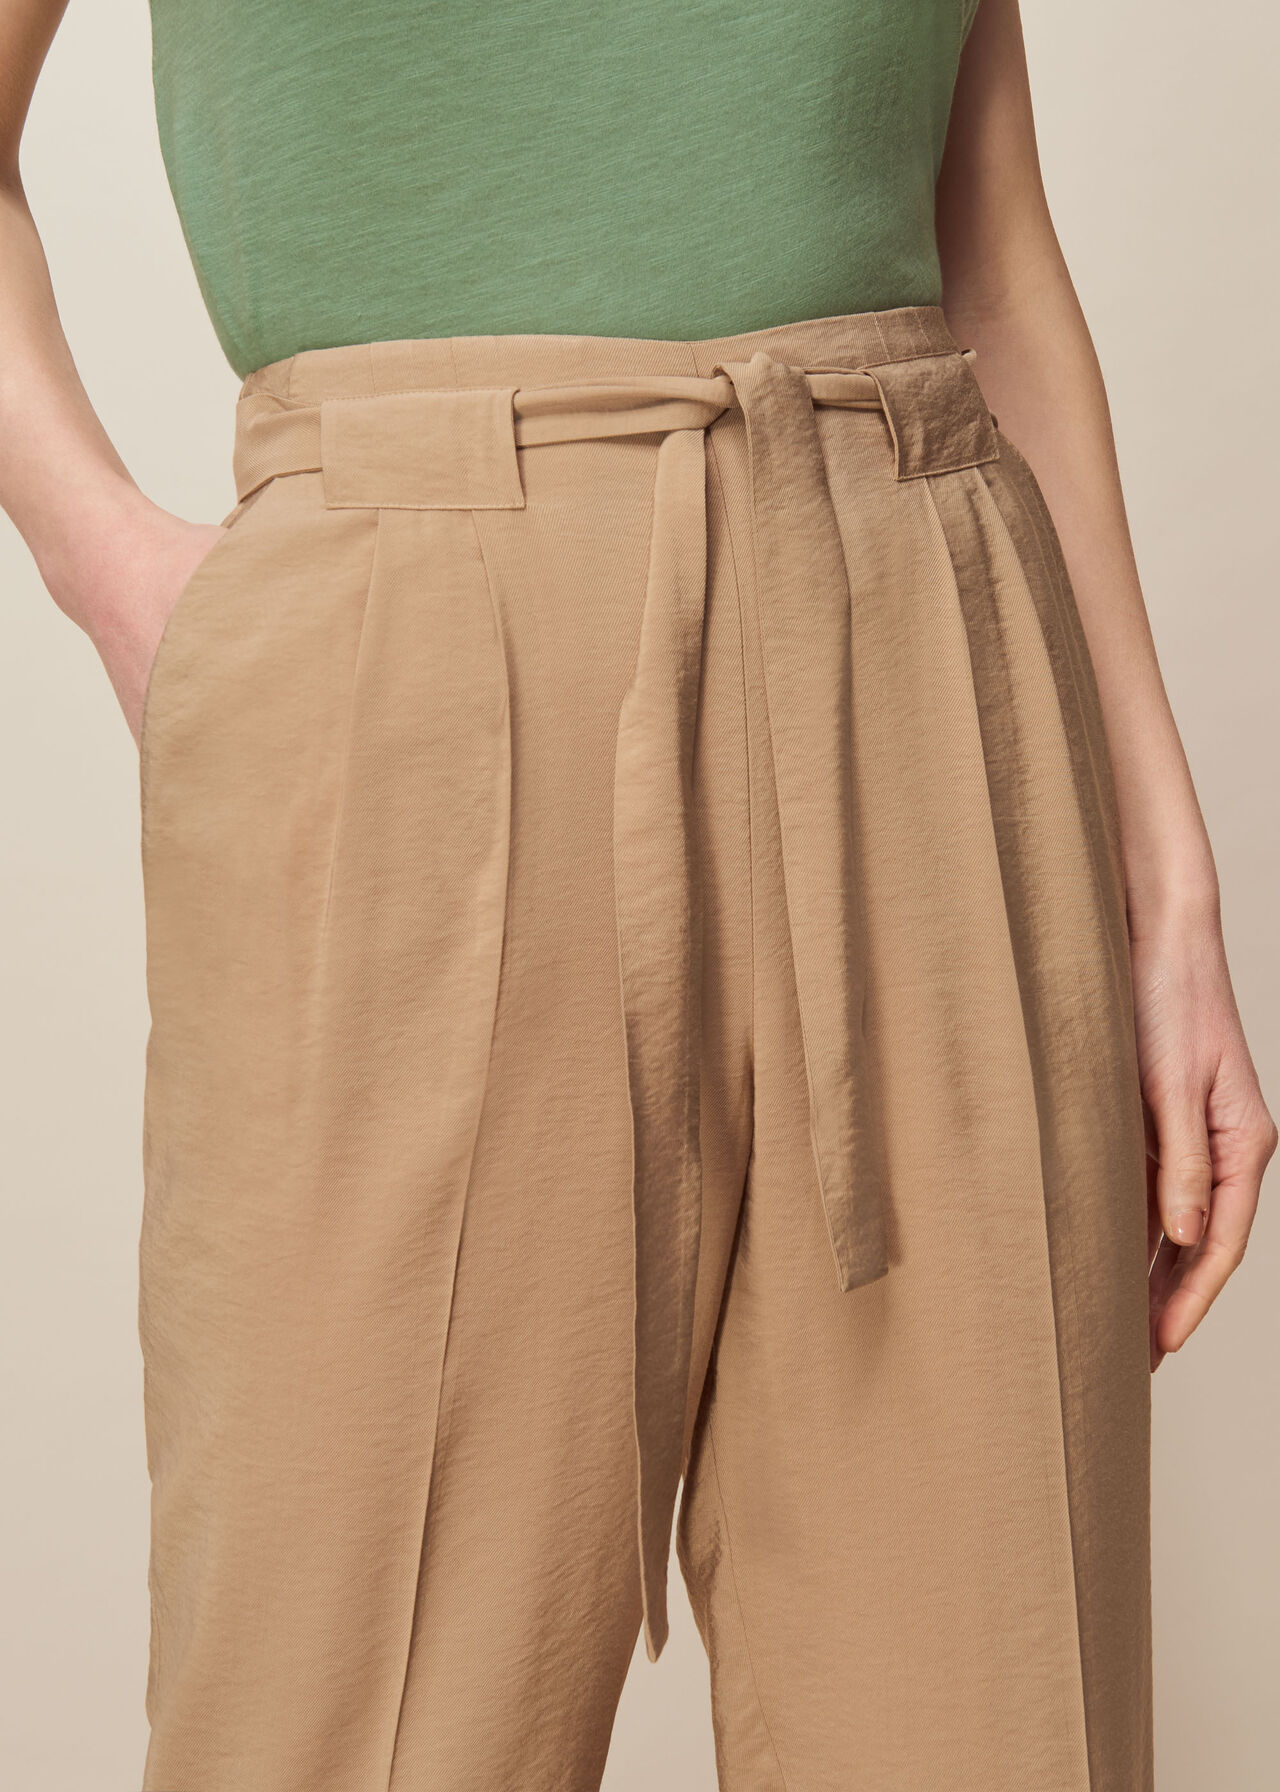 Belted Casual Crop Trouser